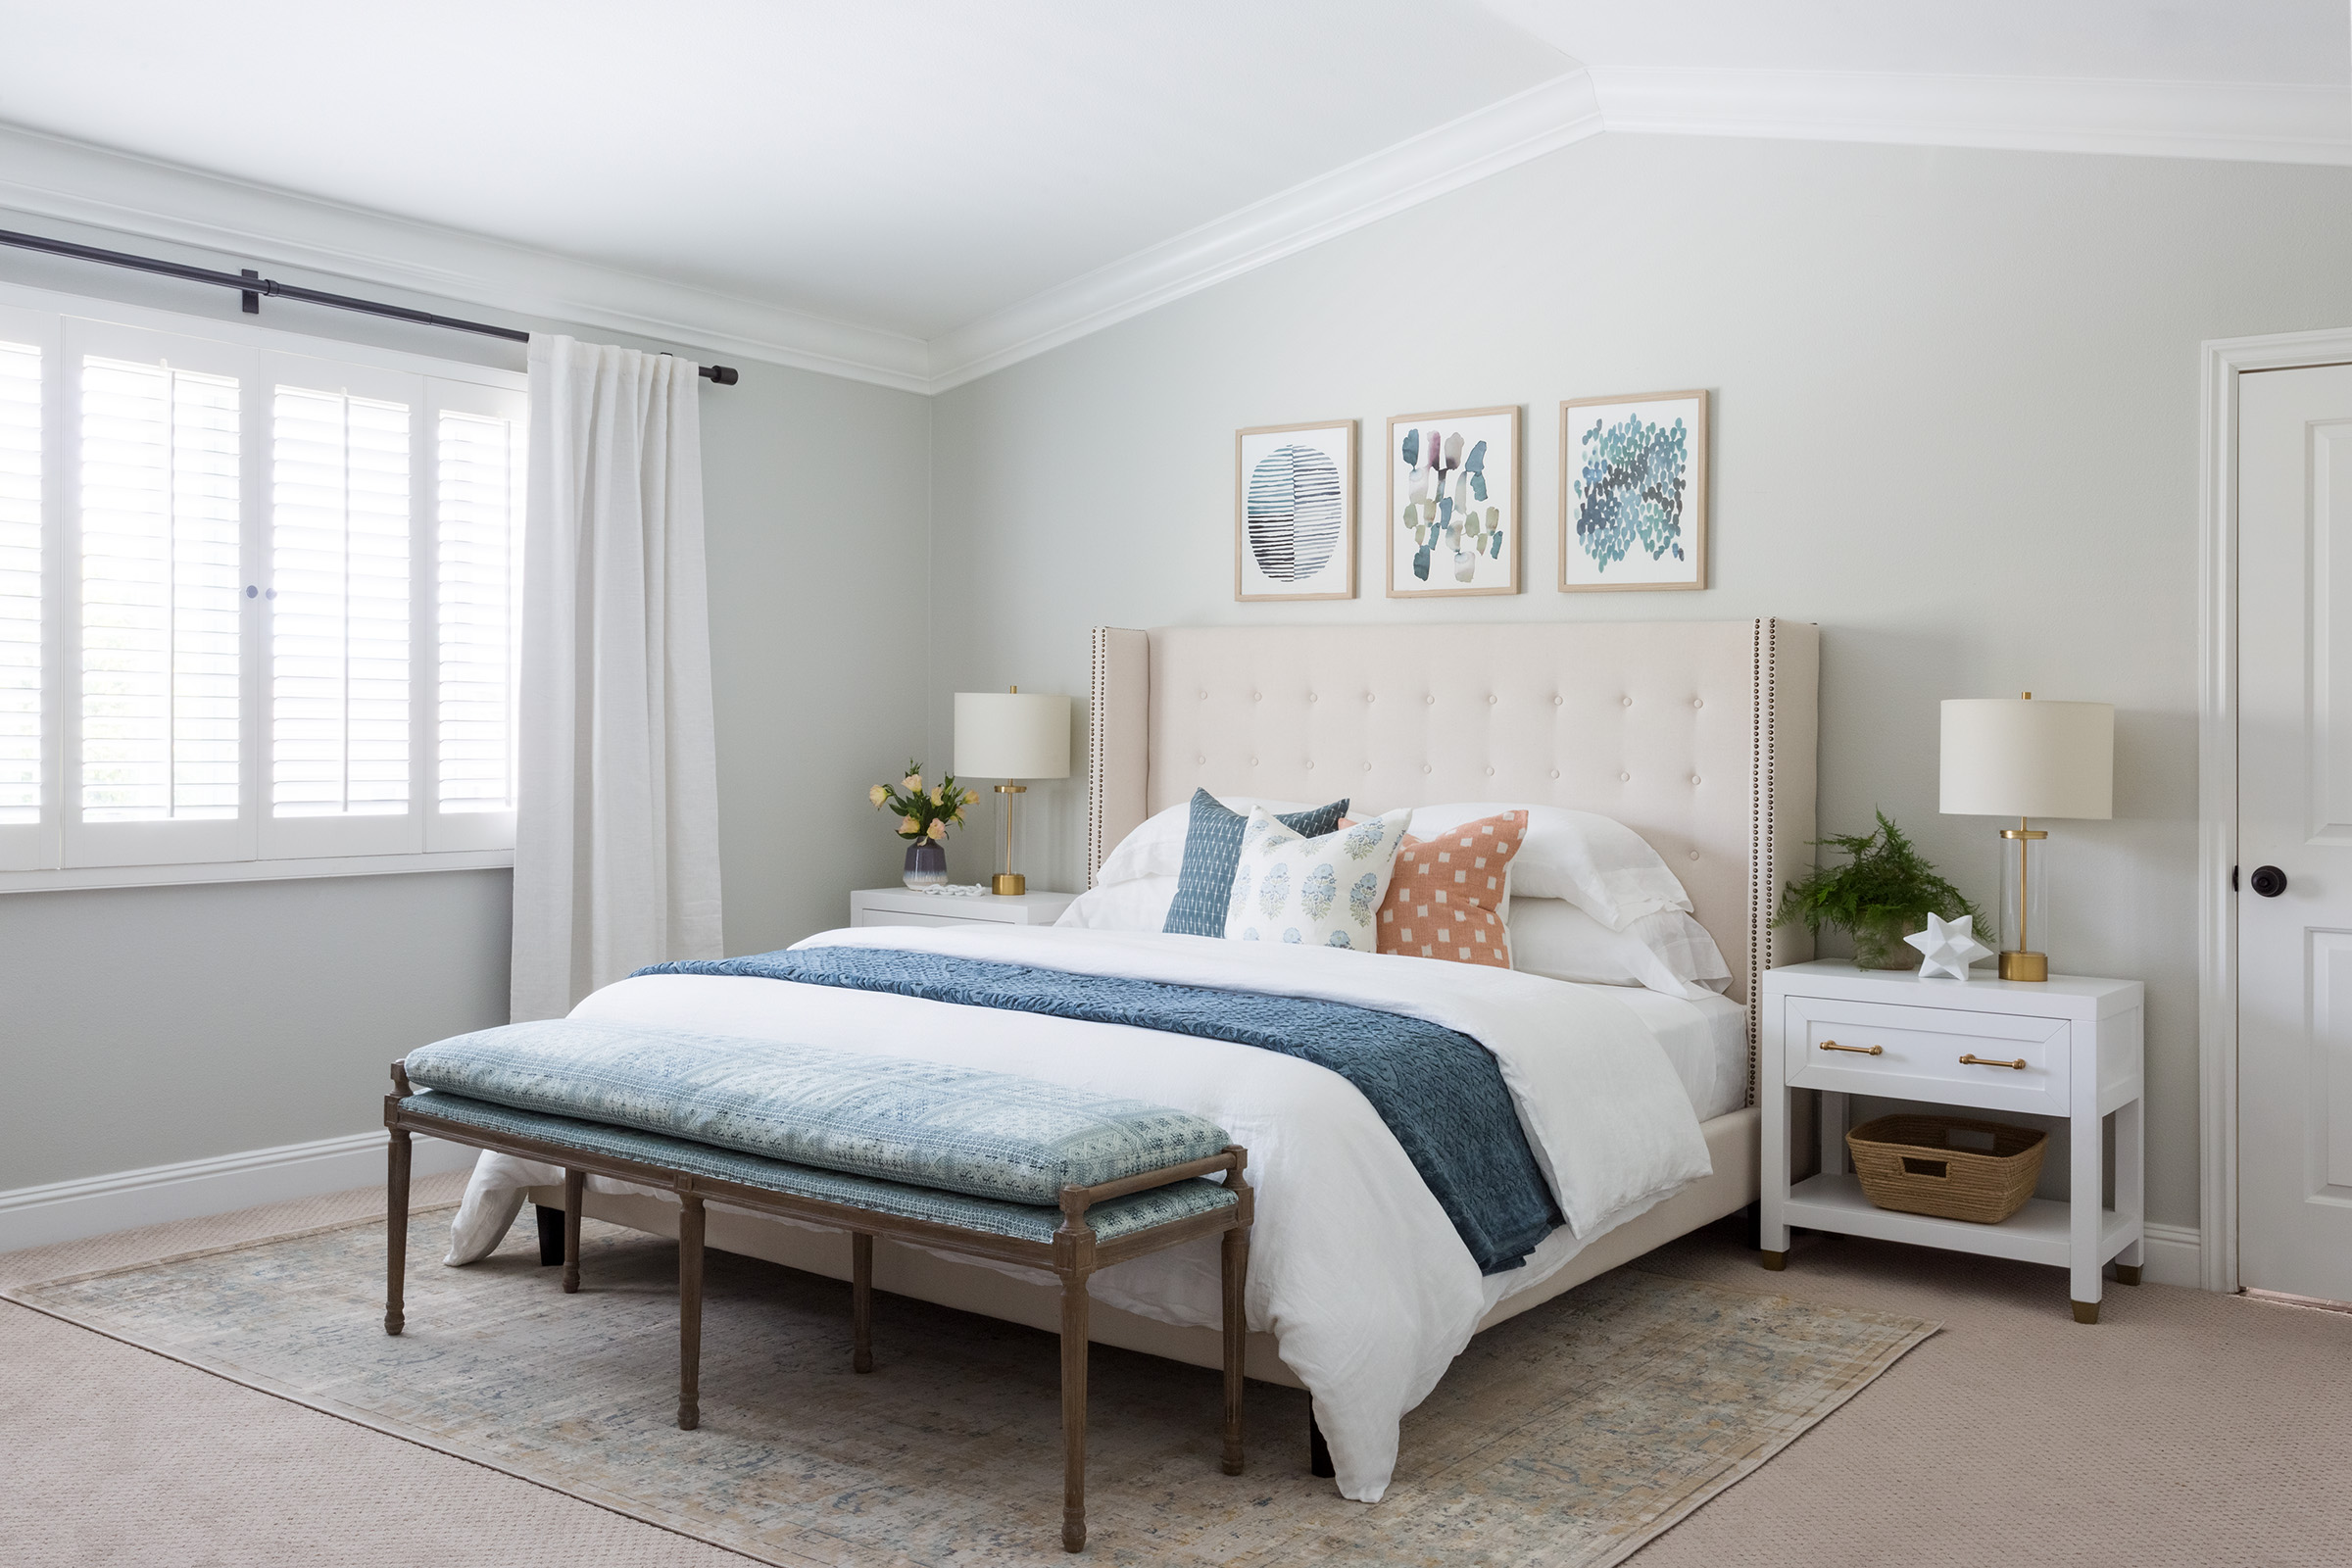 Layered California Traditional Master Bedroom Design by Lindsey Brooke Design - Los Angeles based interior designer.jpg